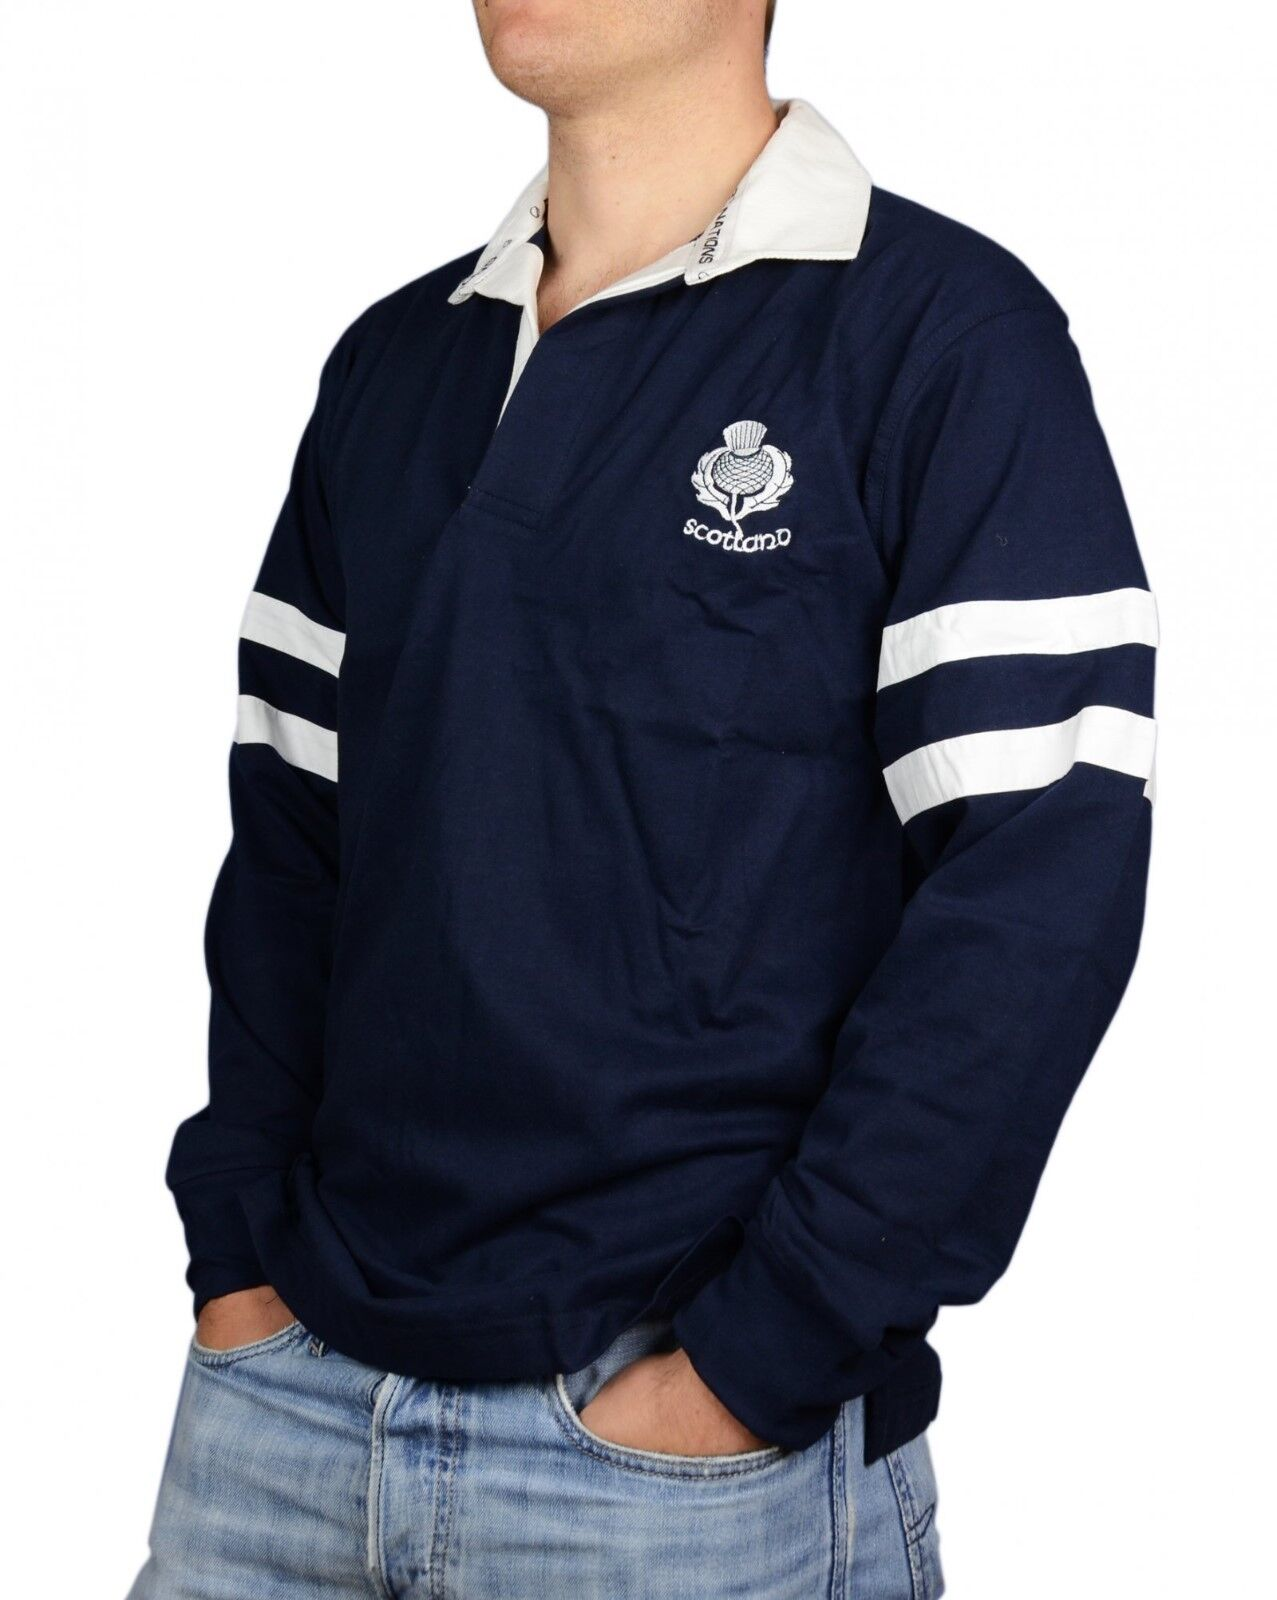 Scotland Two Stripe Long Sleeve Rugby Shirt with Thistle Embroidery Detail